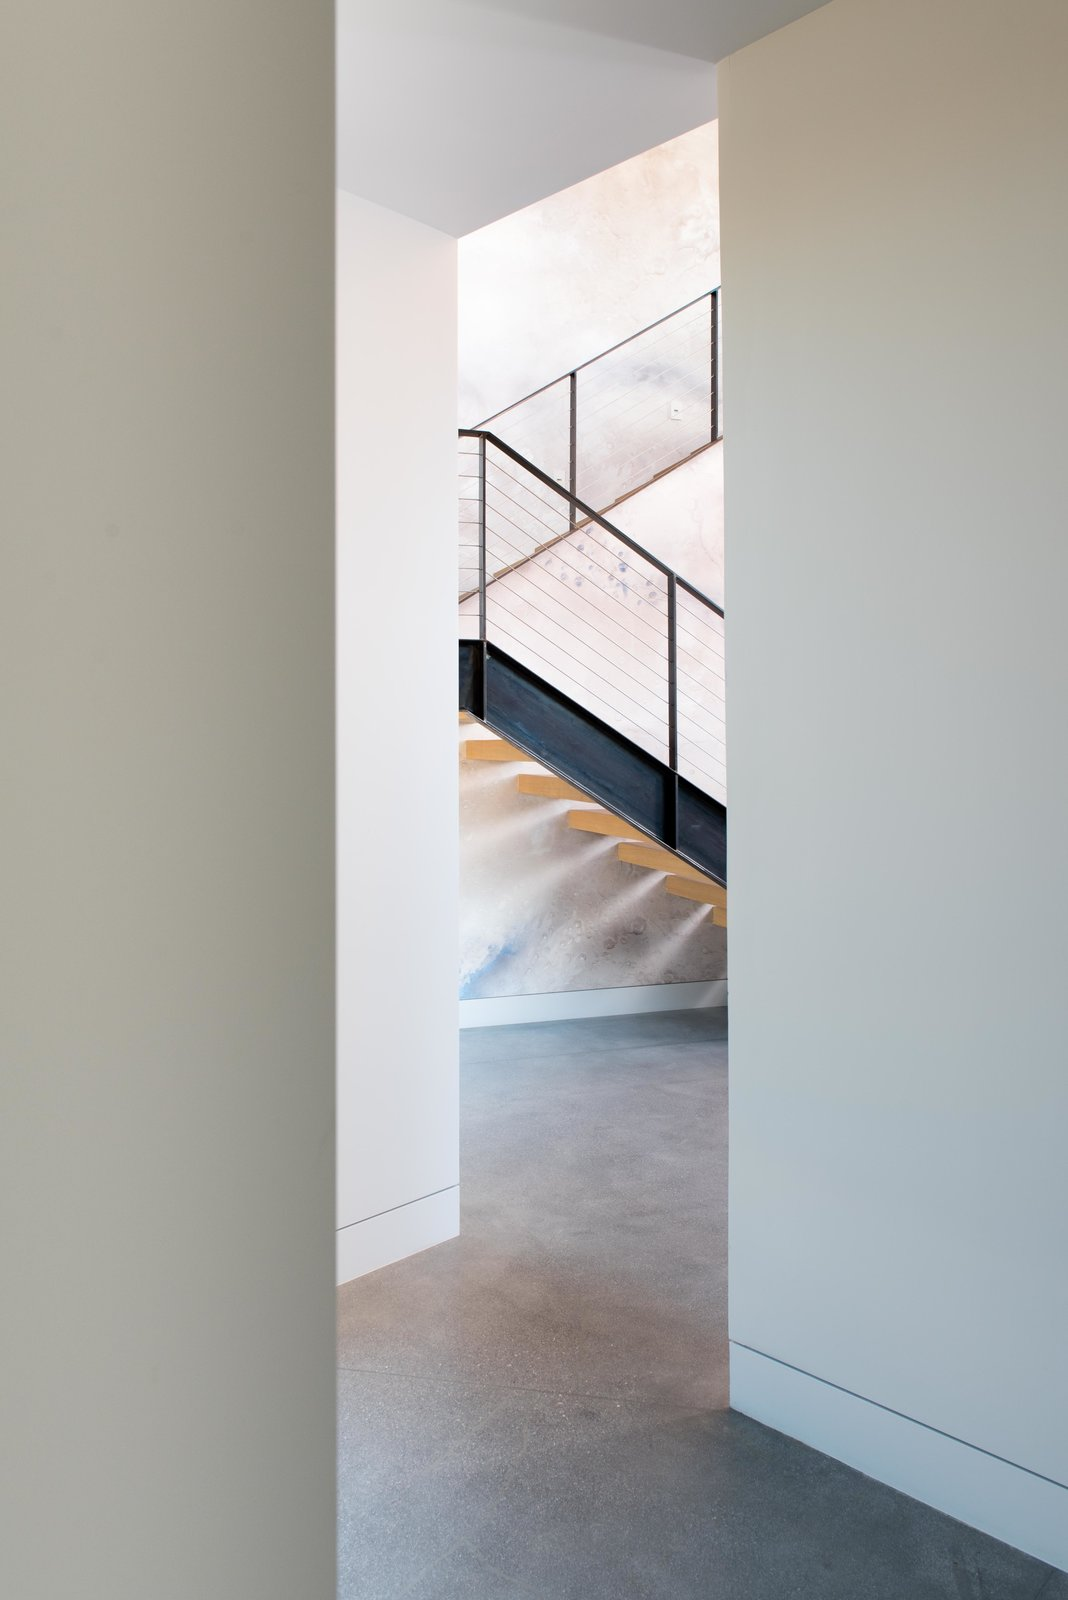 Staircase, Metal, Wood, Cable, and Metal interior stairs with galaxy faux finish wall  Staircase Wood Metal Metal Photos from The Rubber Ducky Trail House